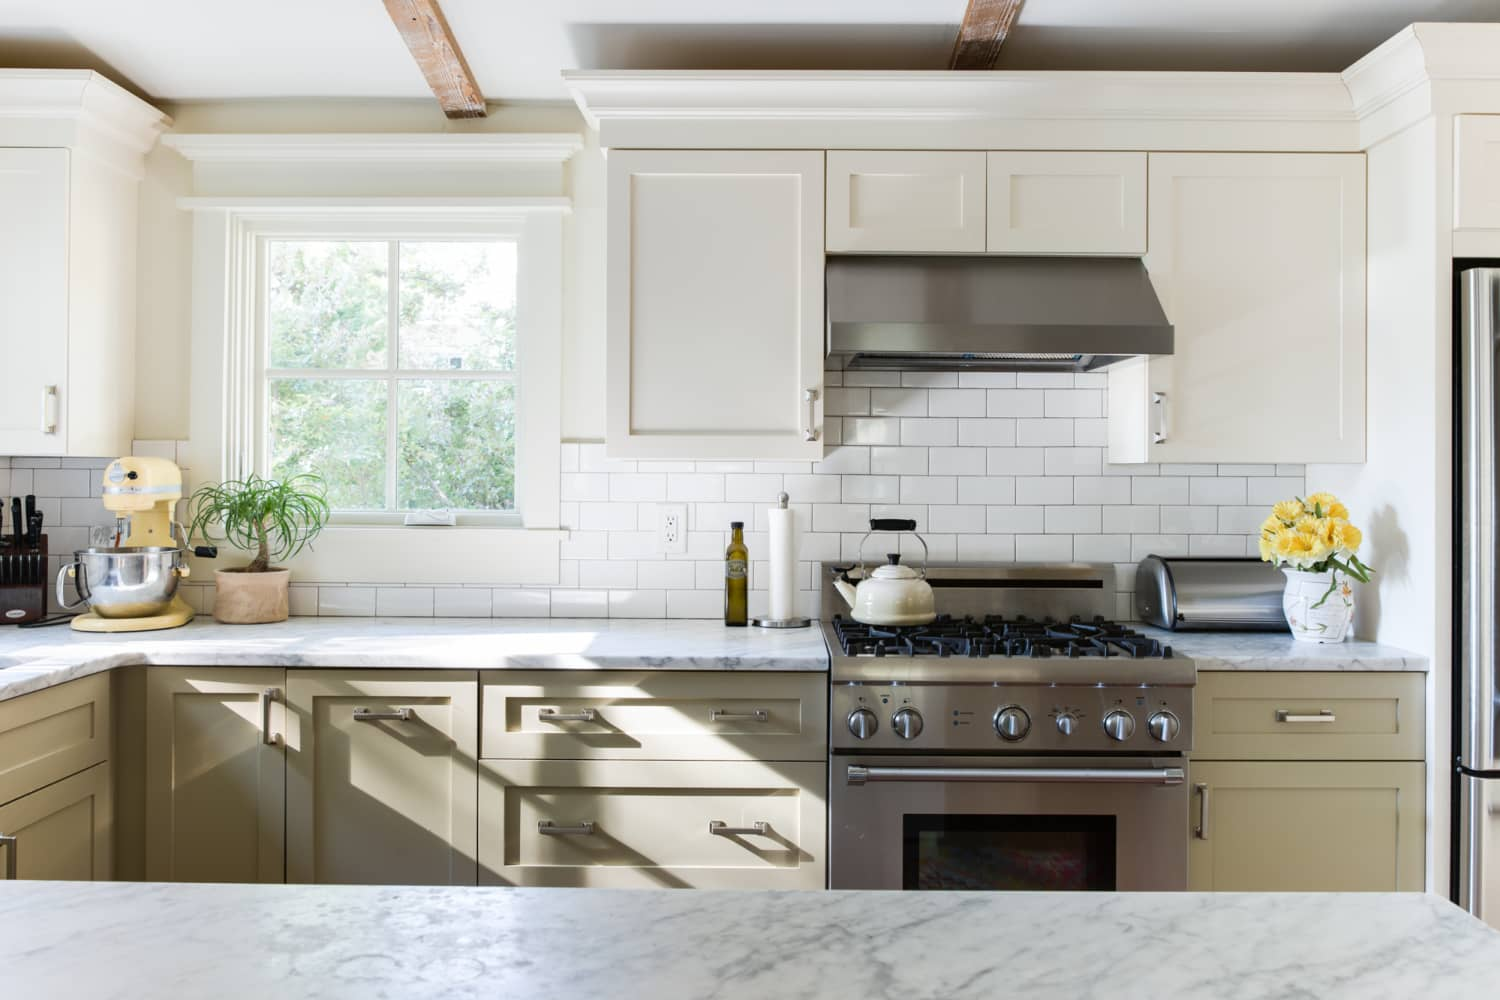 Painting ideas two tone kitchen cabinet colors - Pictures of painted kitchen cabinets ideas ...